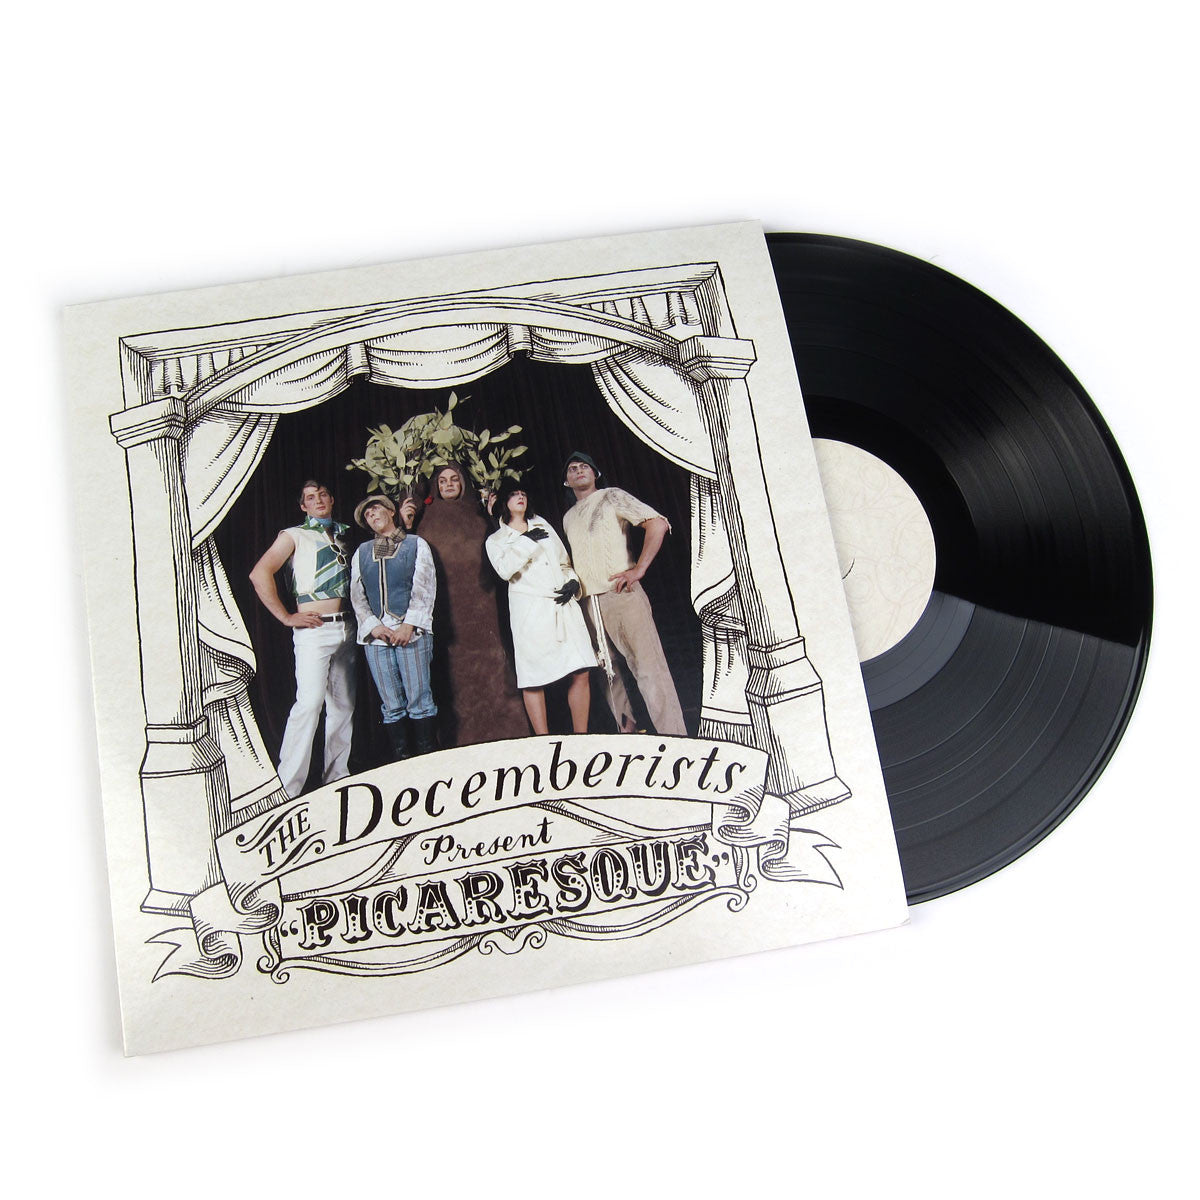 The Decemberists: Picaresque Vinyl 2LP